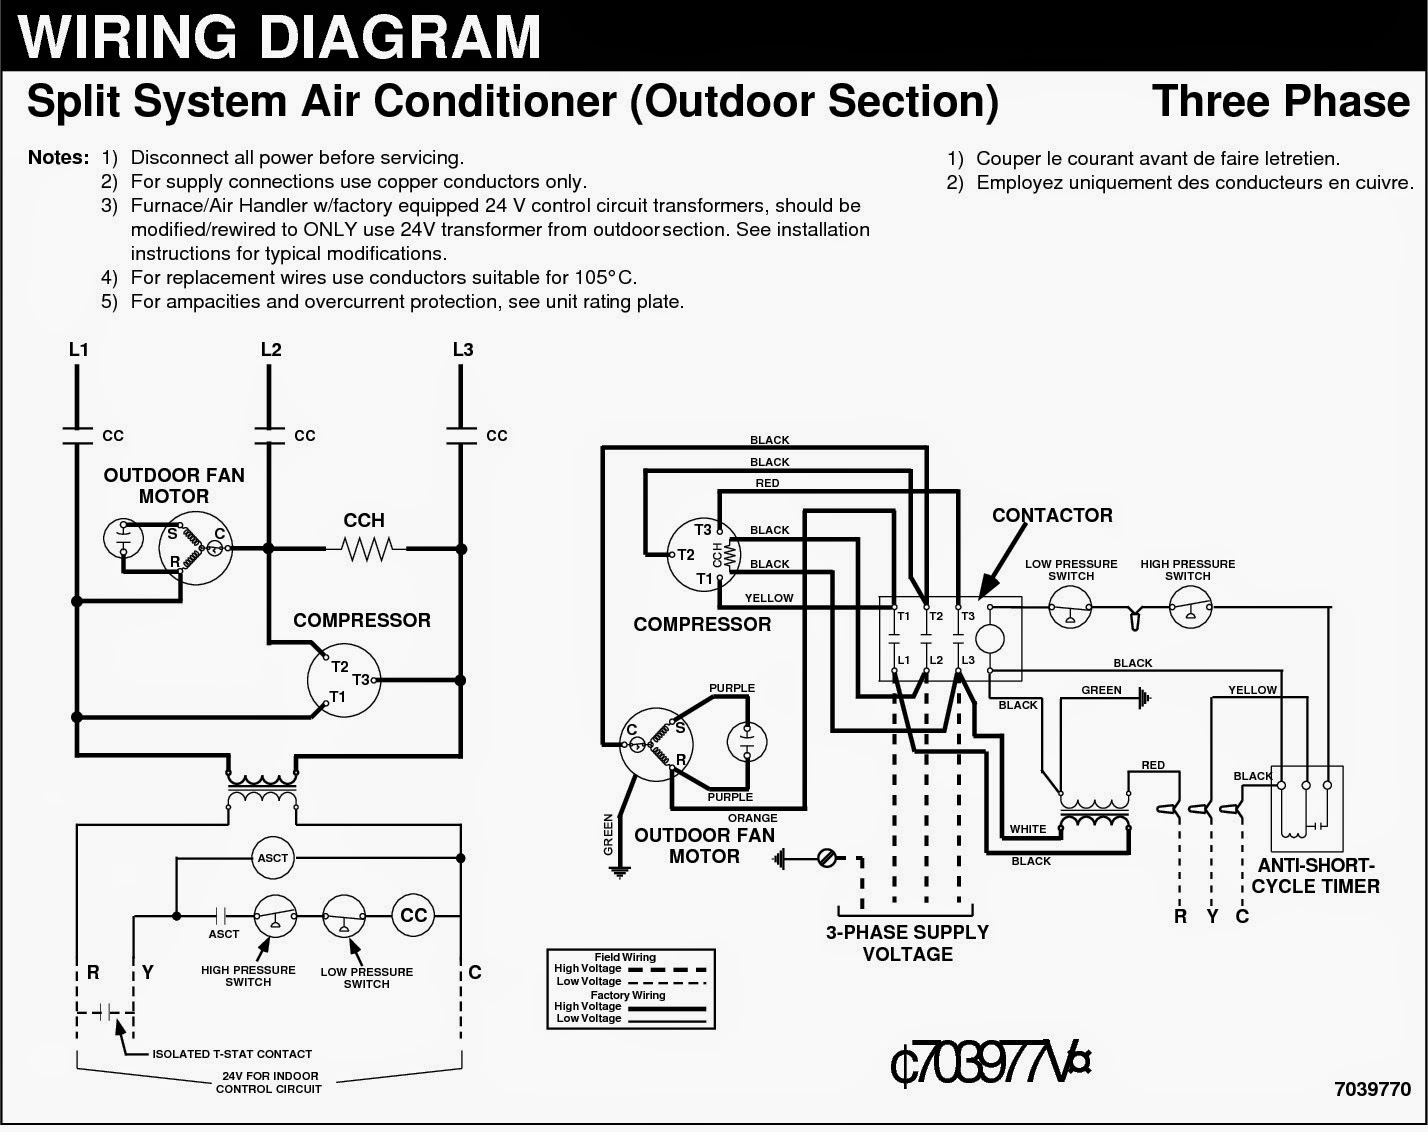 3+phase electrical wiring diagrams for air conditioning systems part two single phase electrical wiring diagram at mr168.co